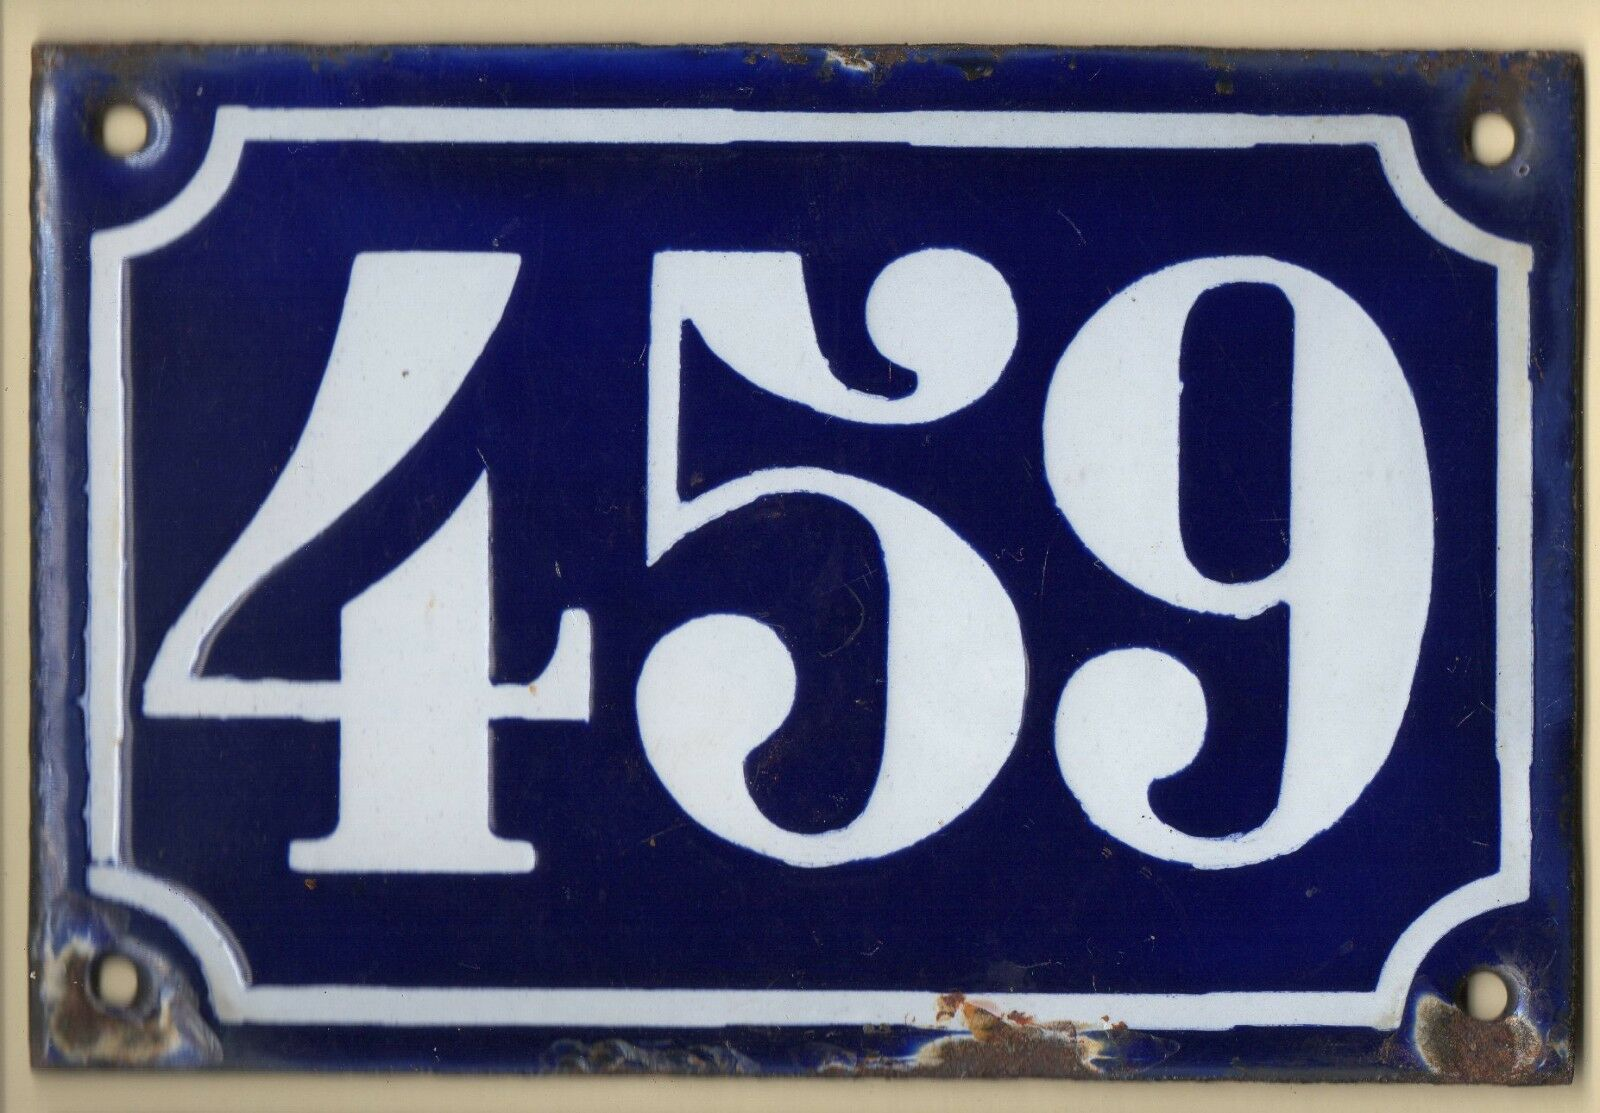 Old blue French house number 459 door gate plate plaque enamel metal sign c1900